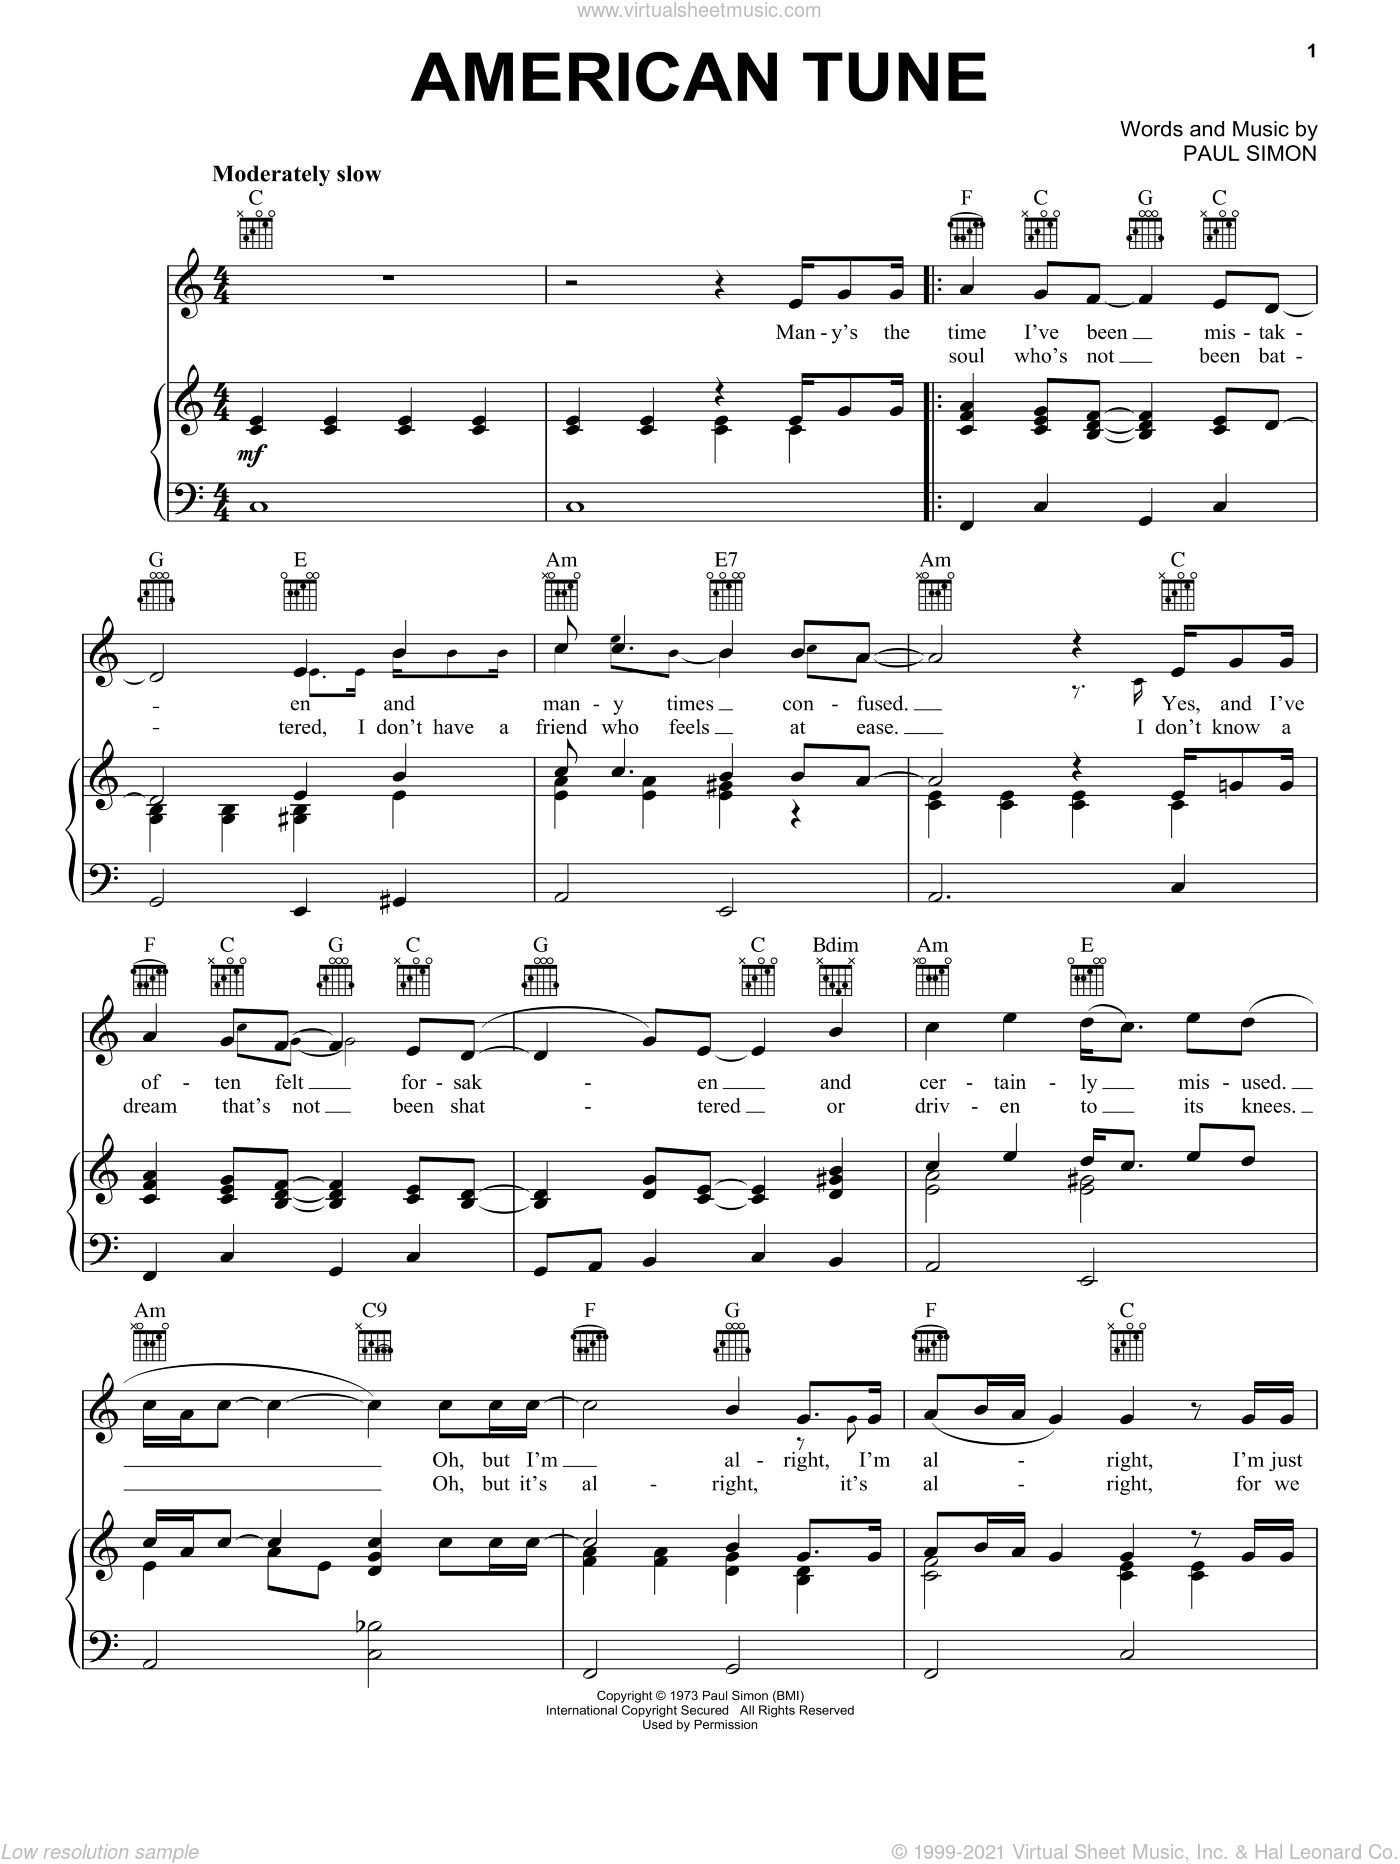 American Tune sheet music for voice, piano or guitar by Paul Simon, intermediate